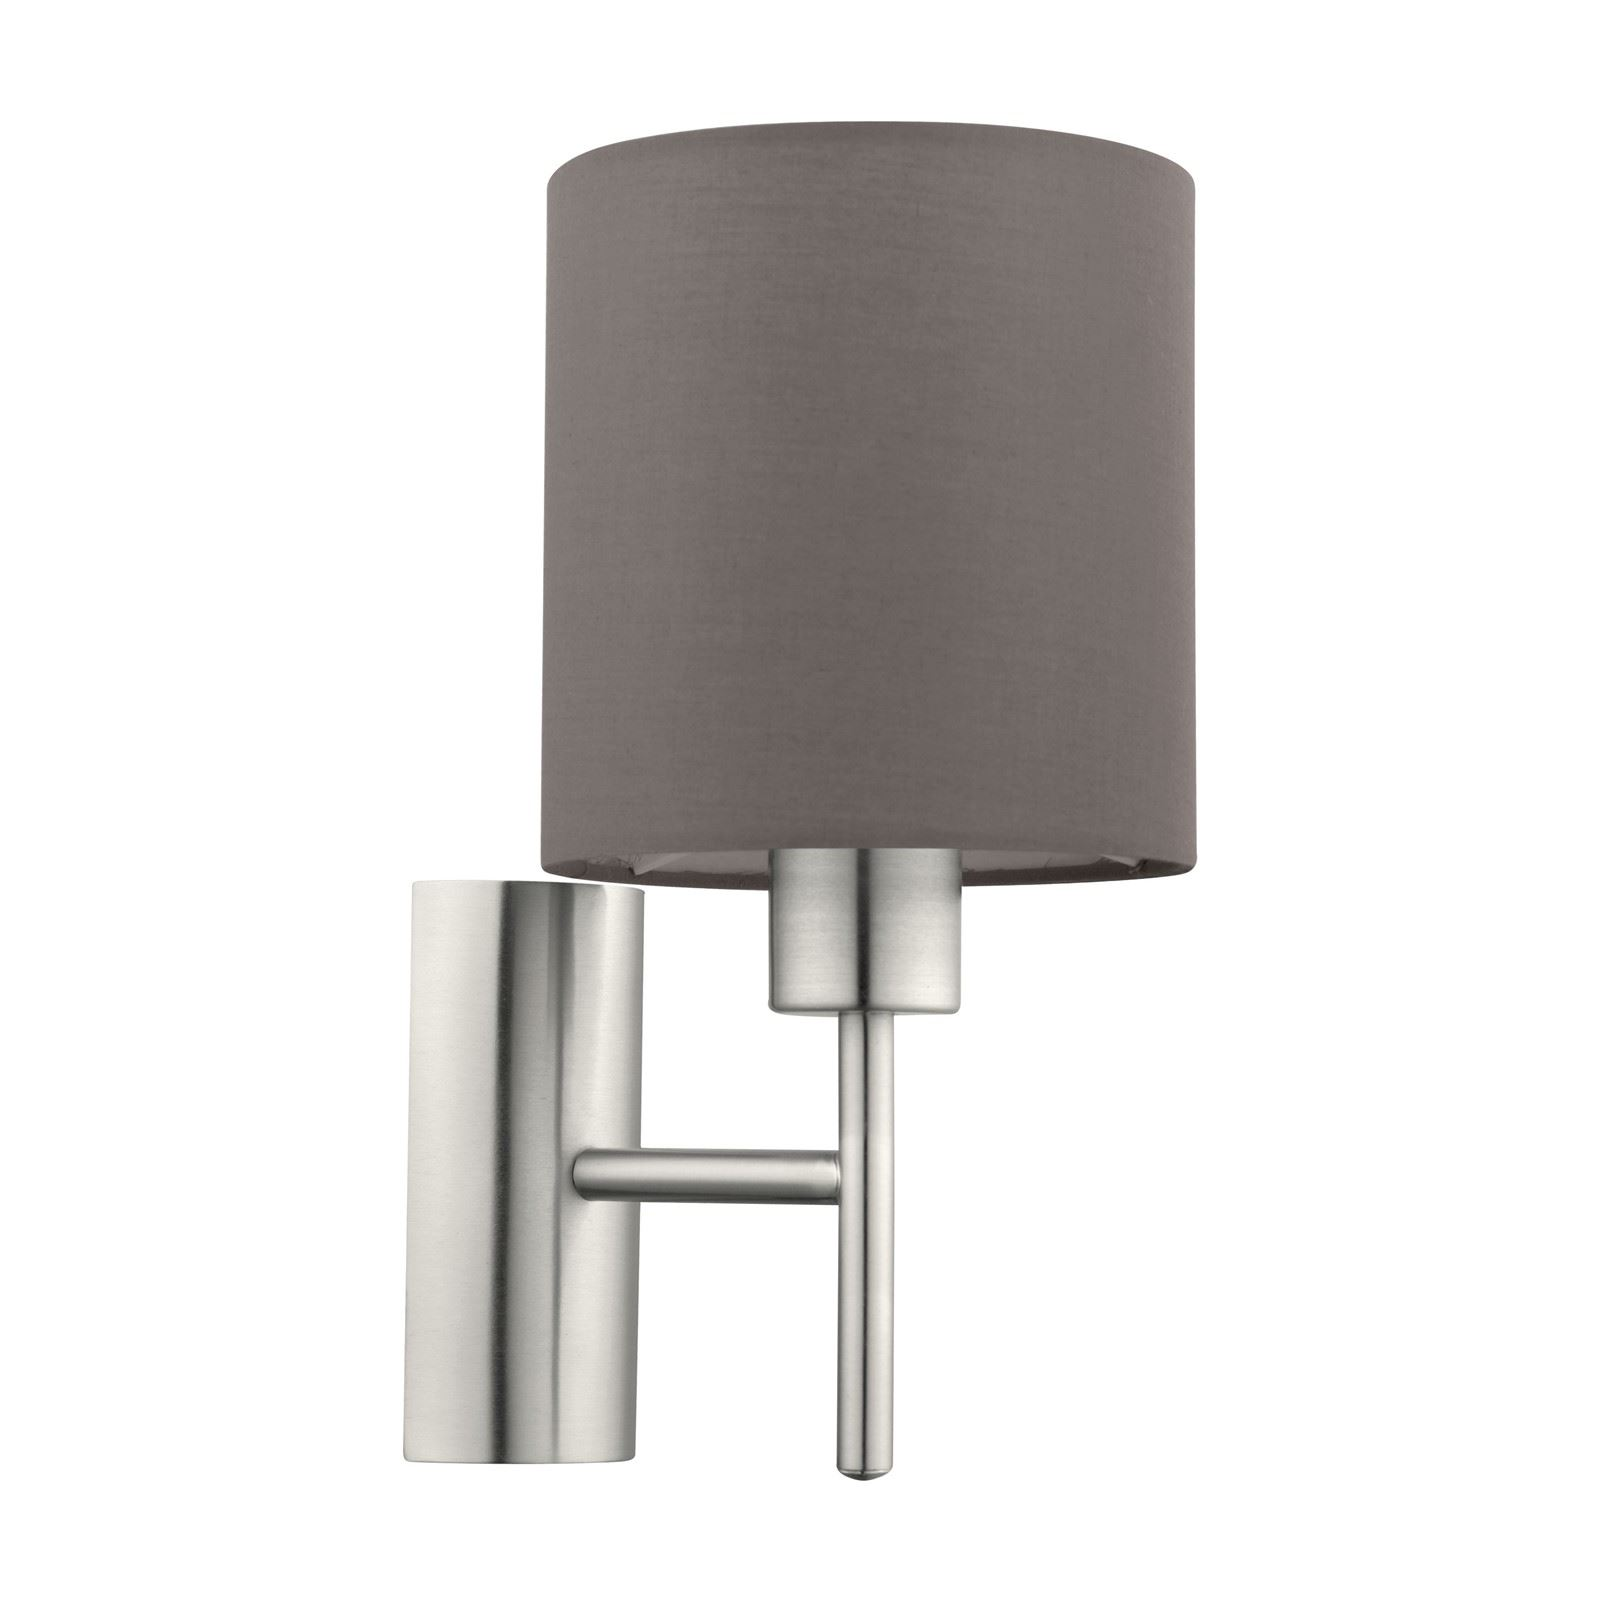 Pasteri Wall 1 Light With Rocker Switch Fabric Matt Anthracite-Brown Shade